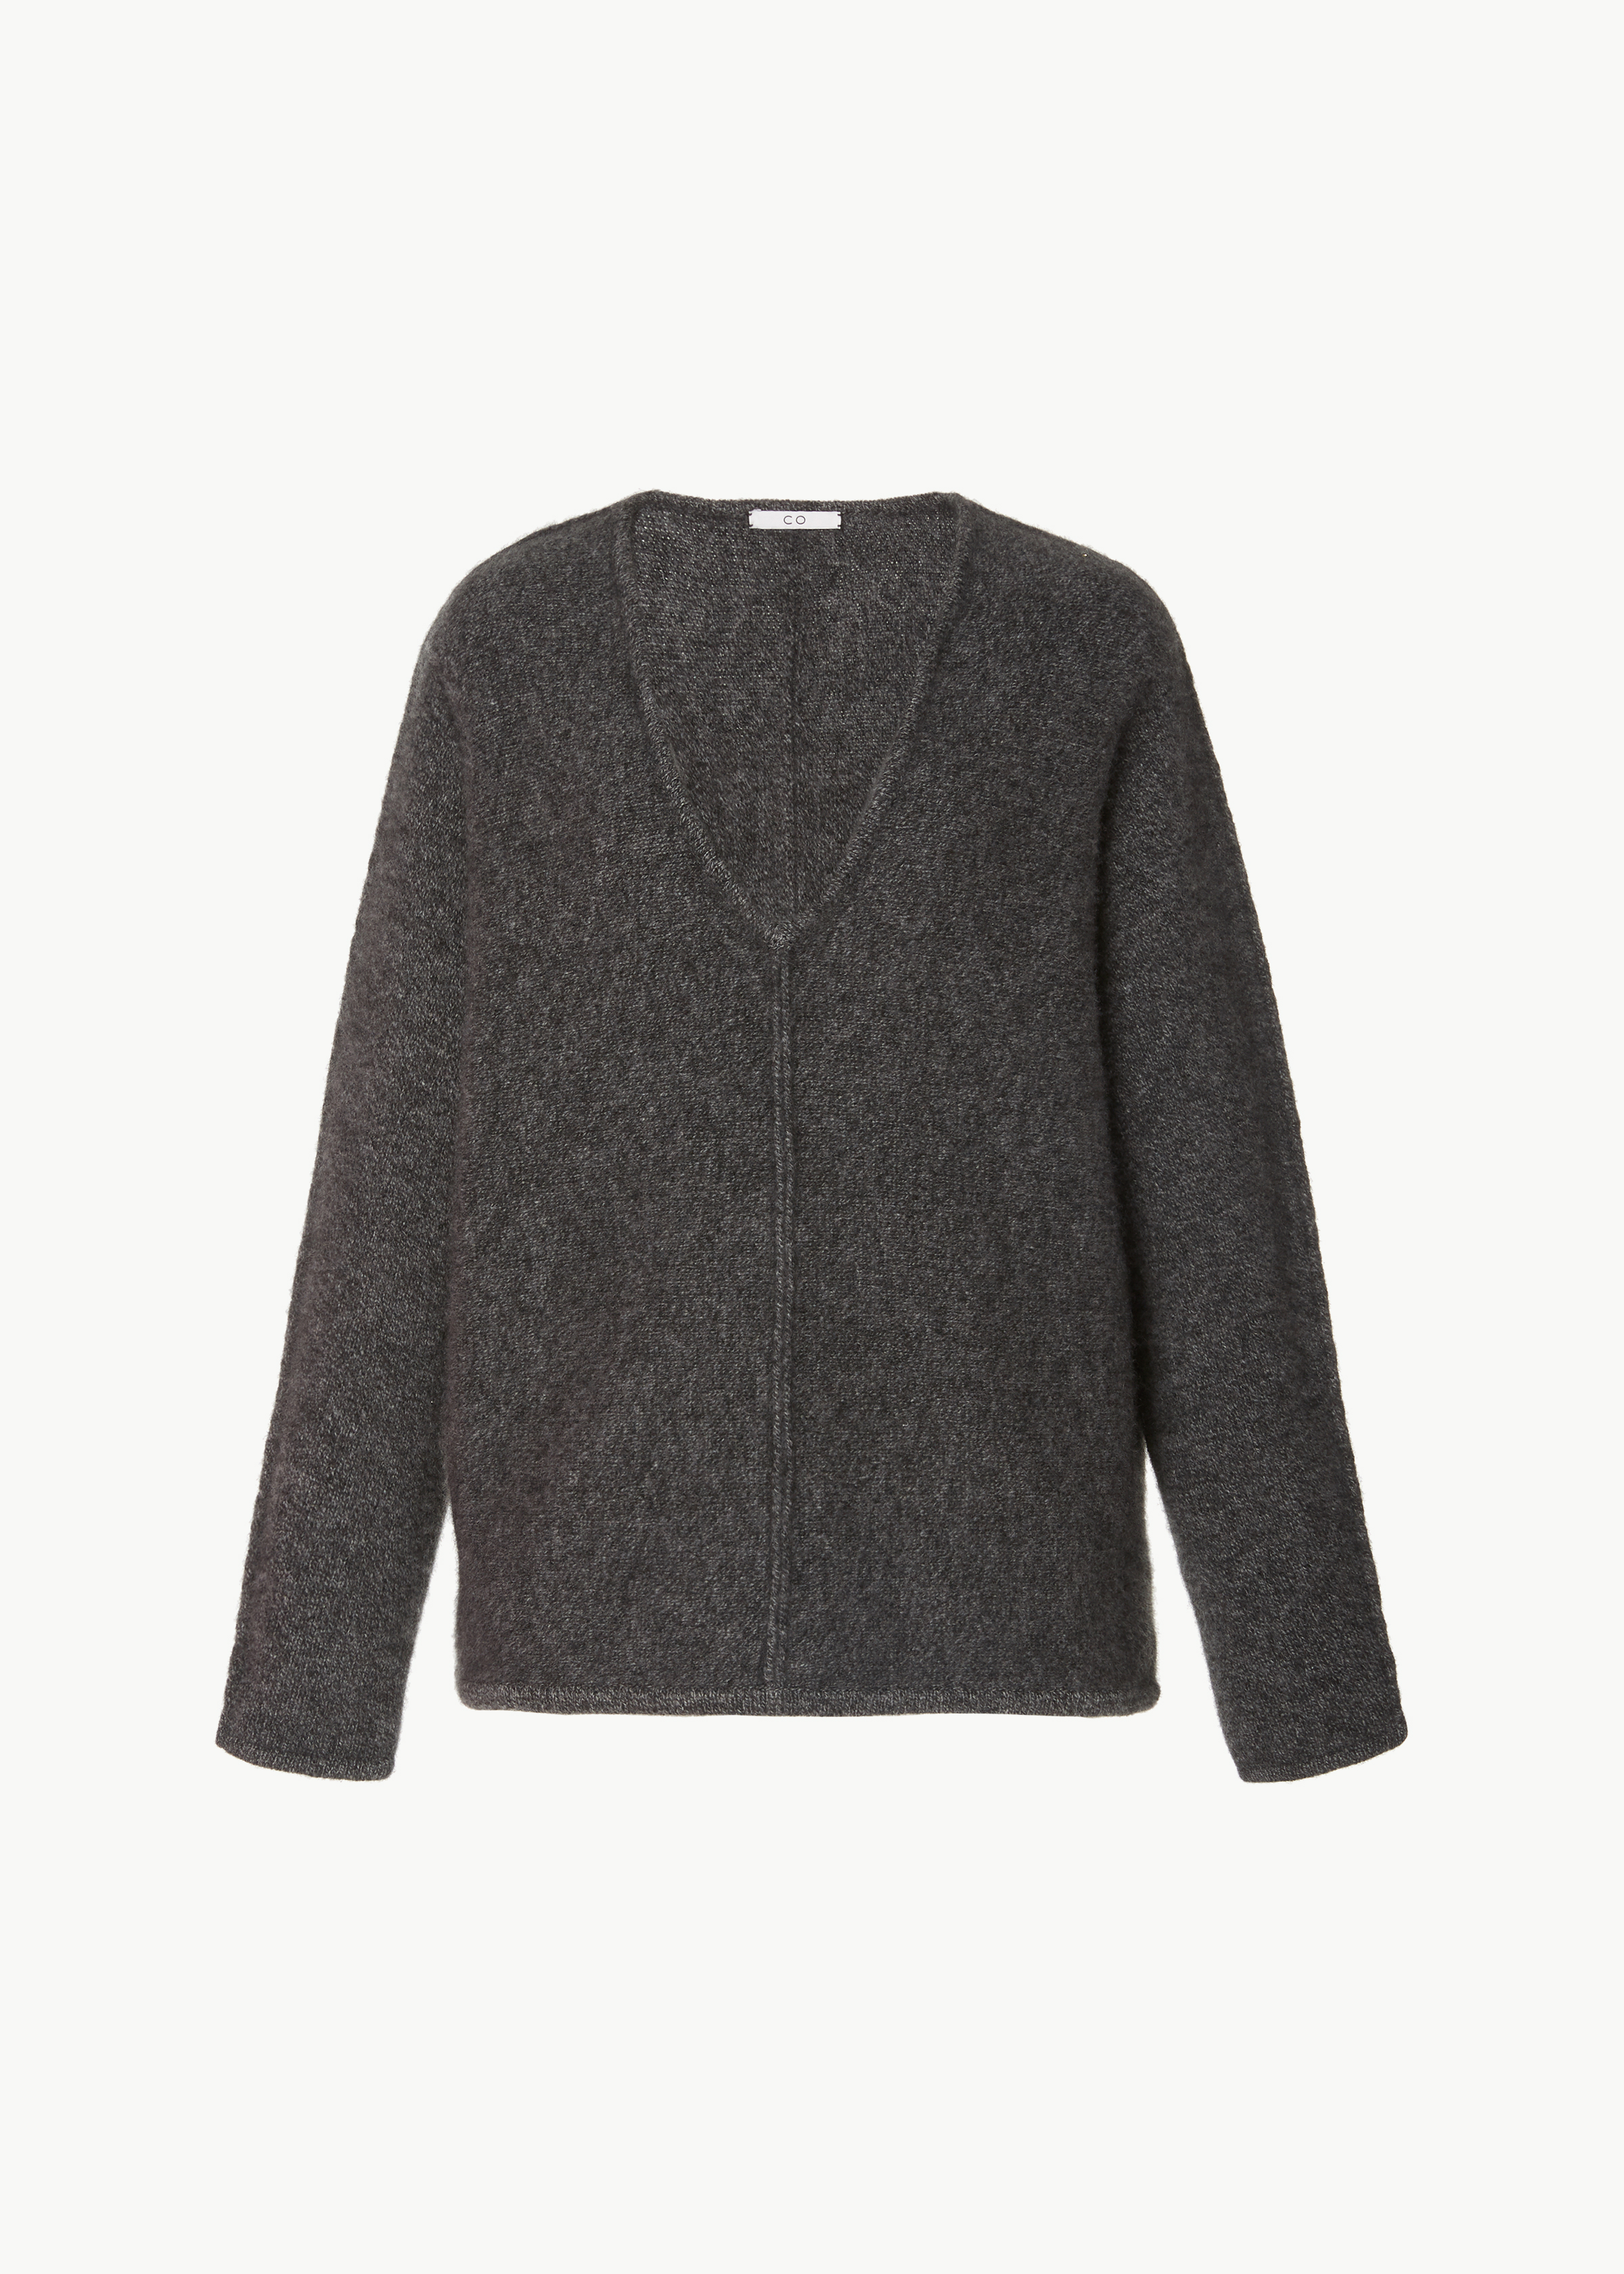 V-Neck Cashmere Sweater - Light Taupe in Charcoal by Co Collections